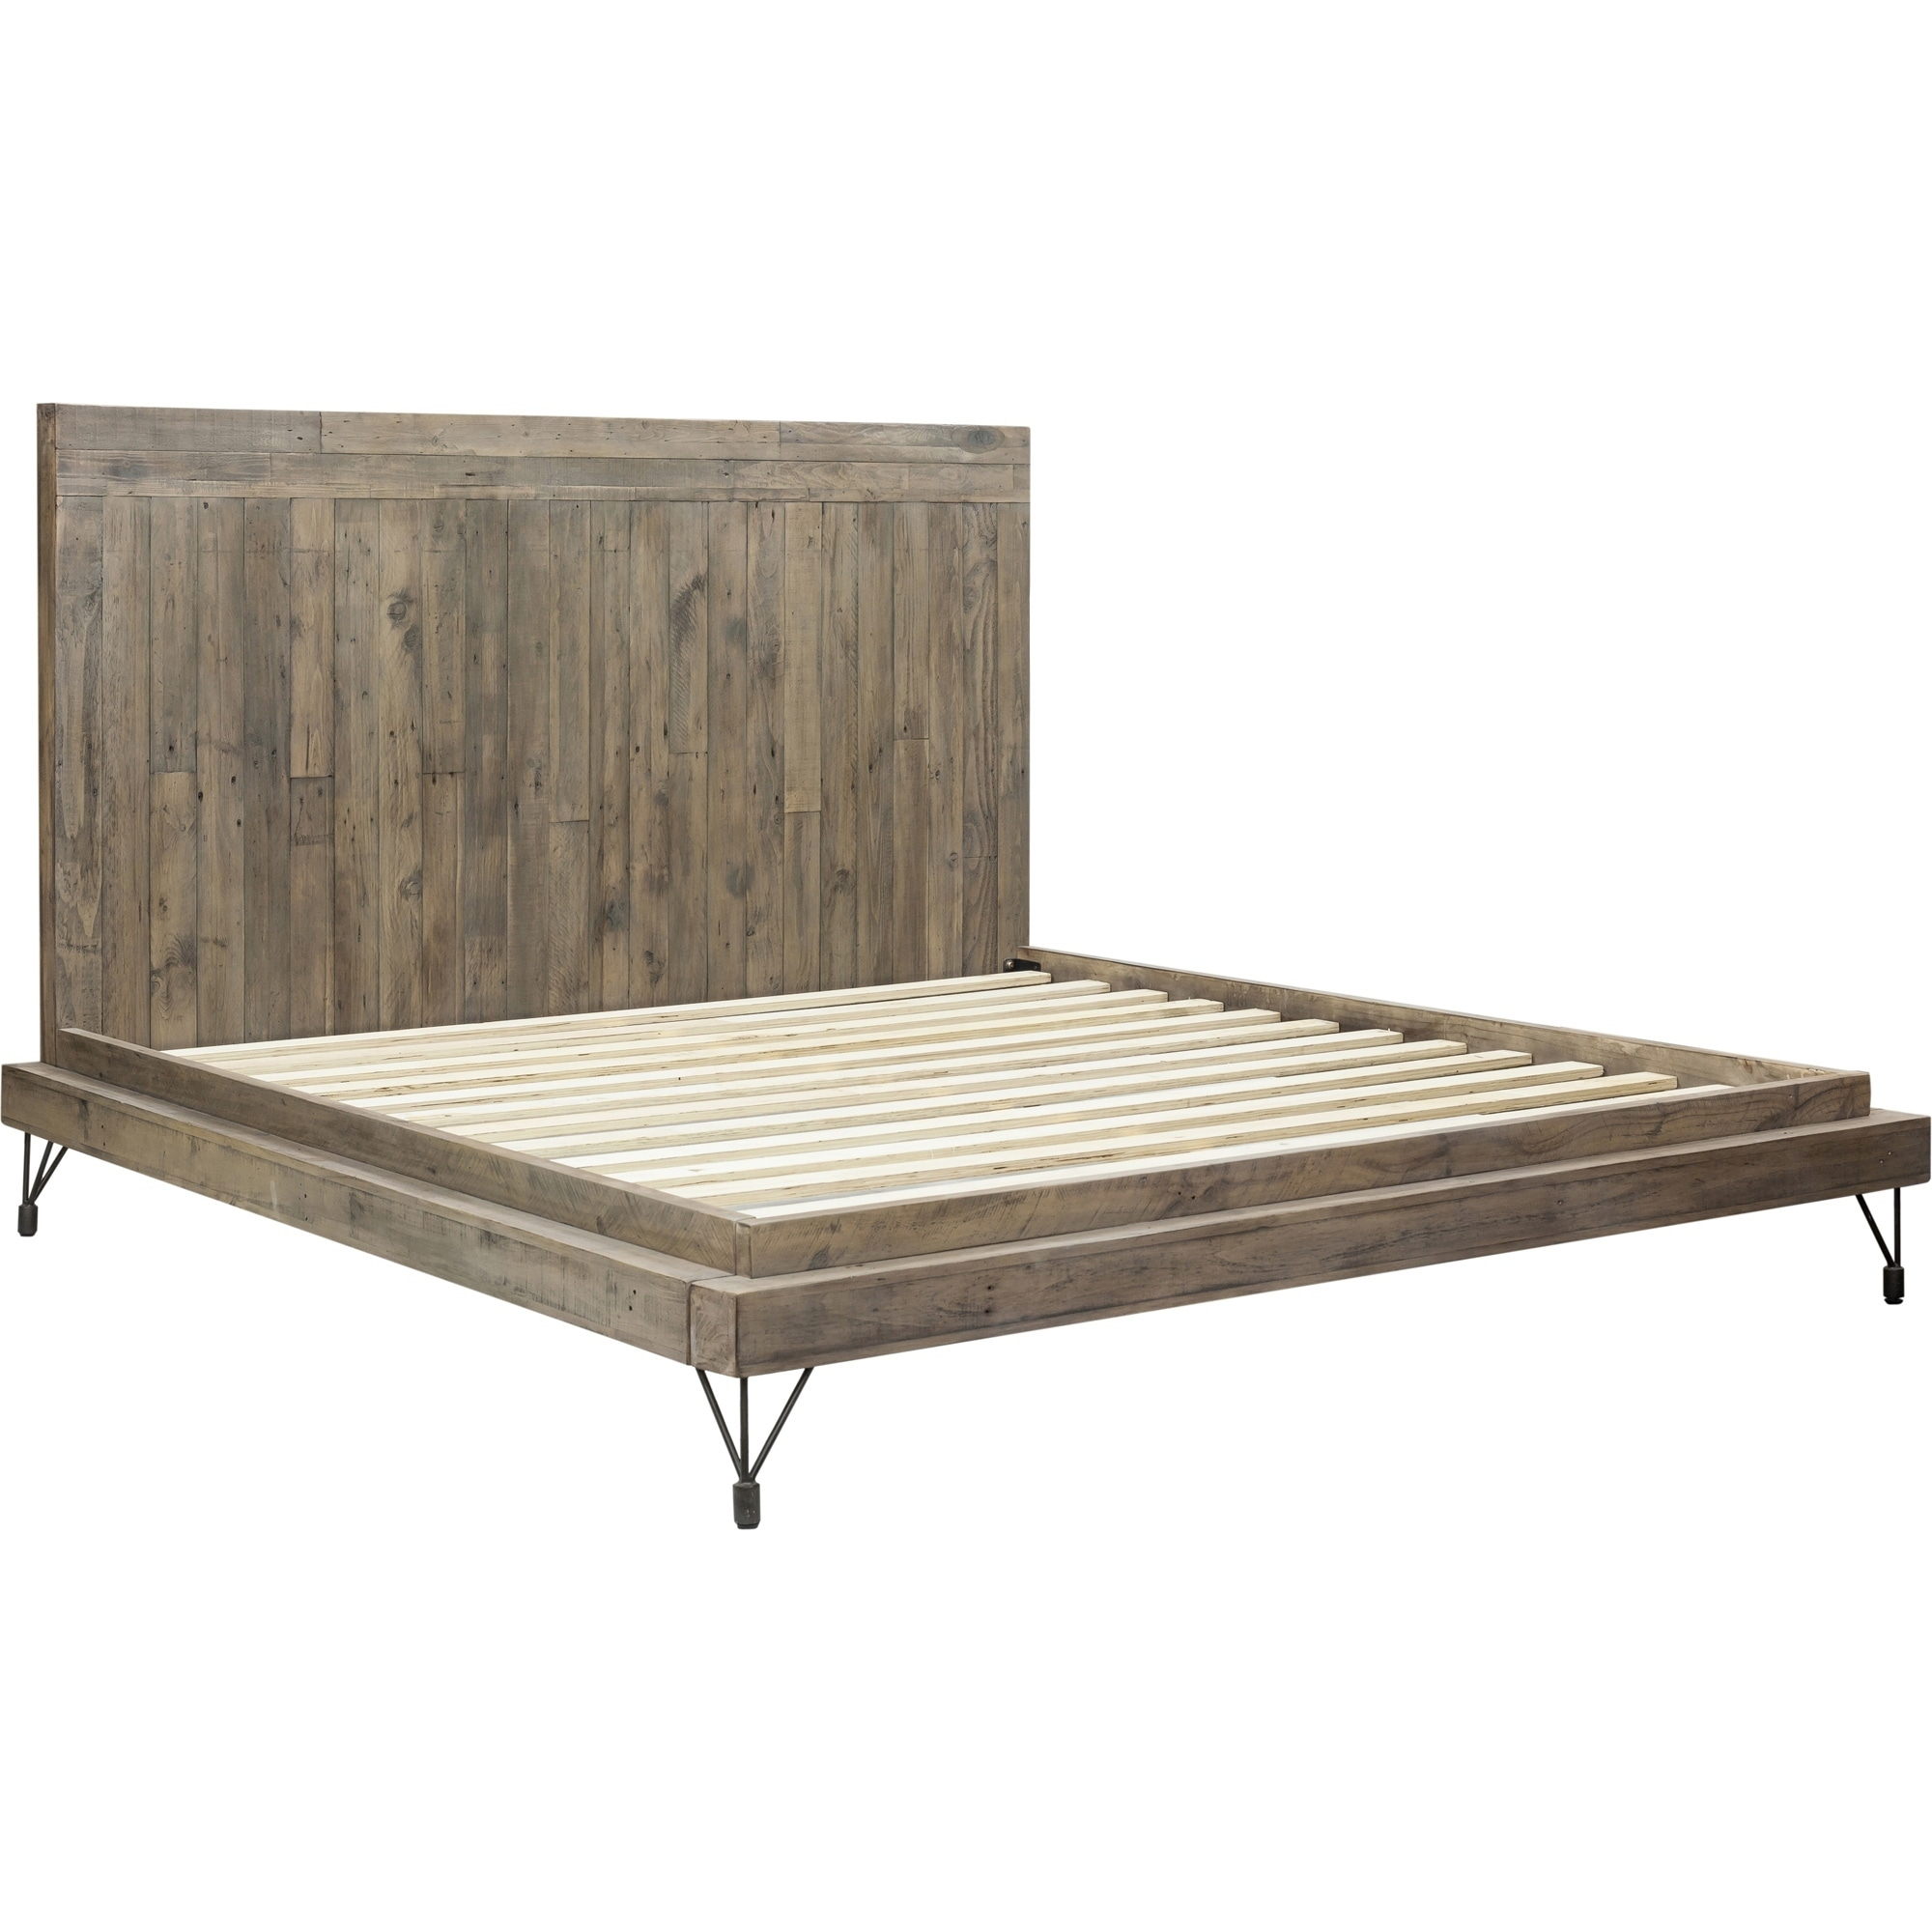 2ft 6 Cabin Bed Buy Beds Clearance Liquidation Online At Overstock Our Best